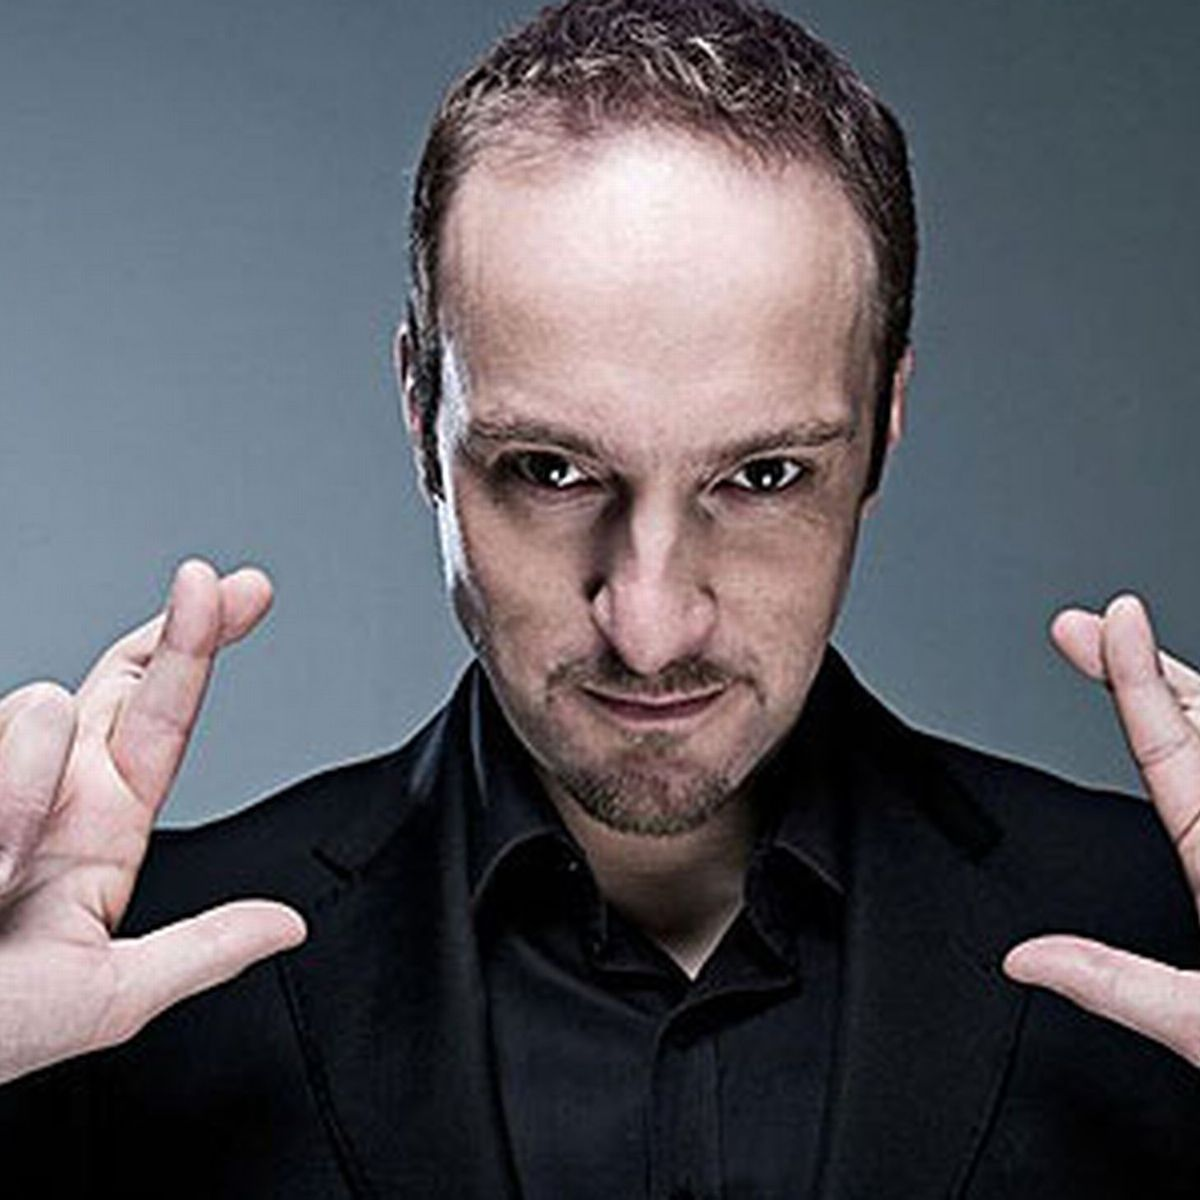 MENTALISMO - Derren Brown